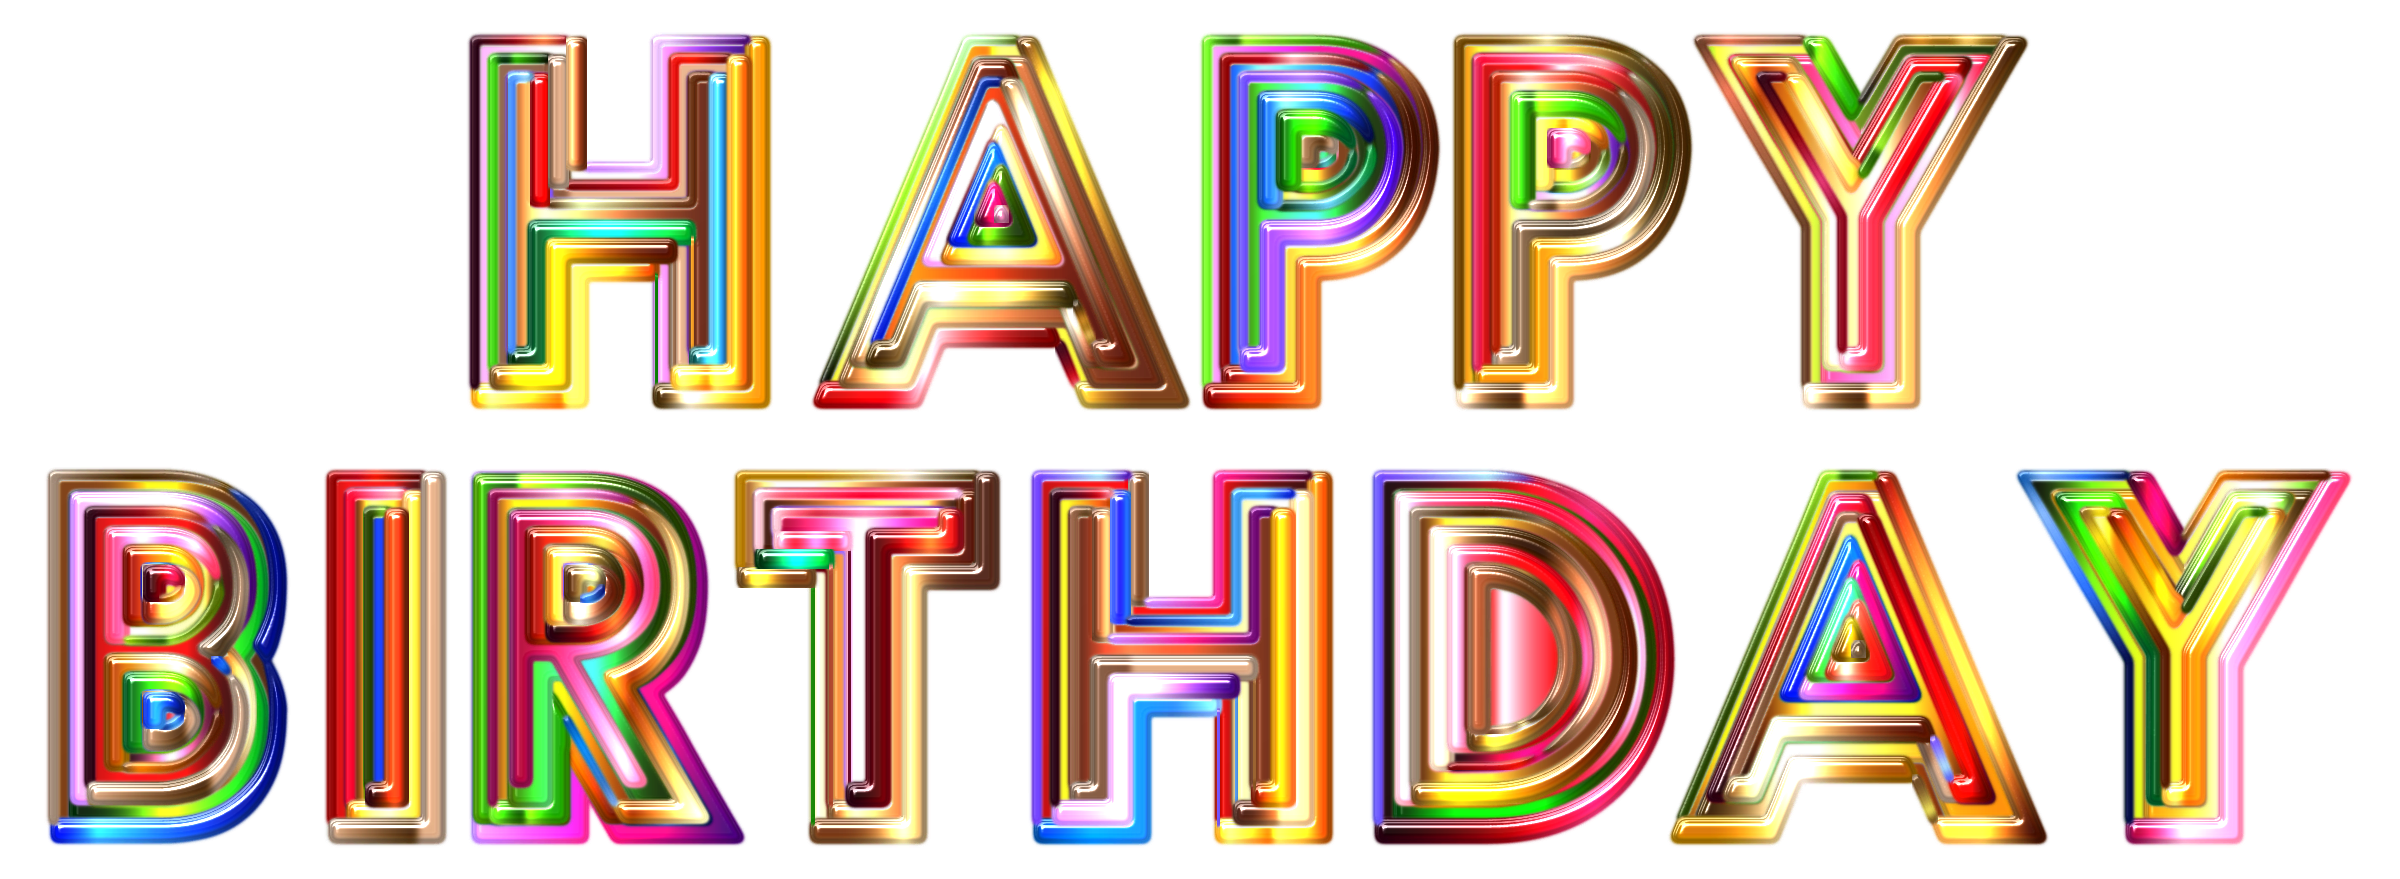 Happy birthday baseball clipart jpg black and white stock Happy Birthday Transparent PNG Pictures - Free Icons and PNG Backgrounds jpg black and white stock